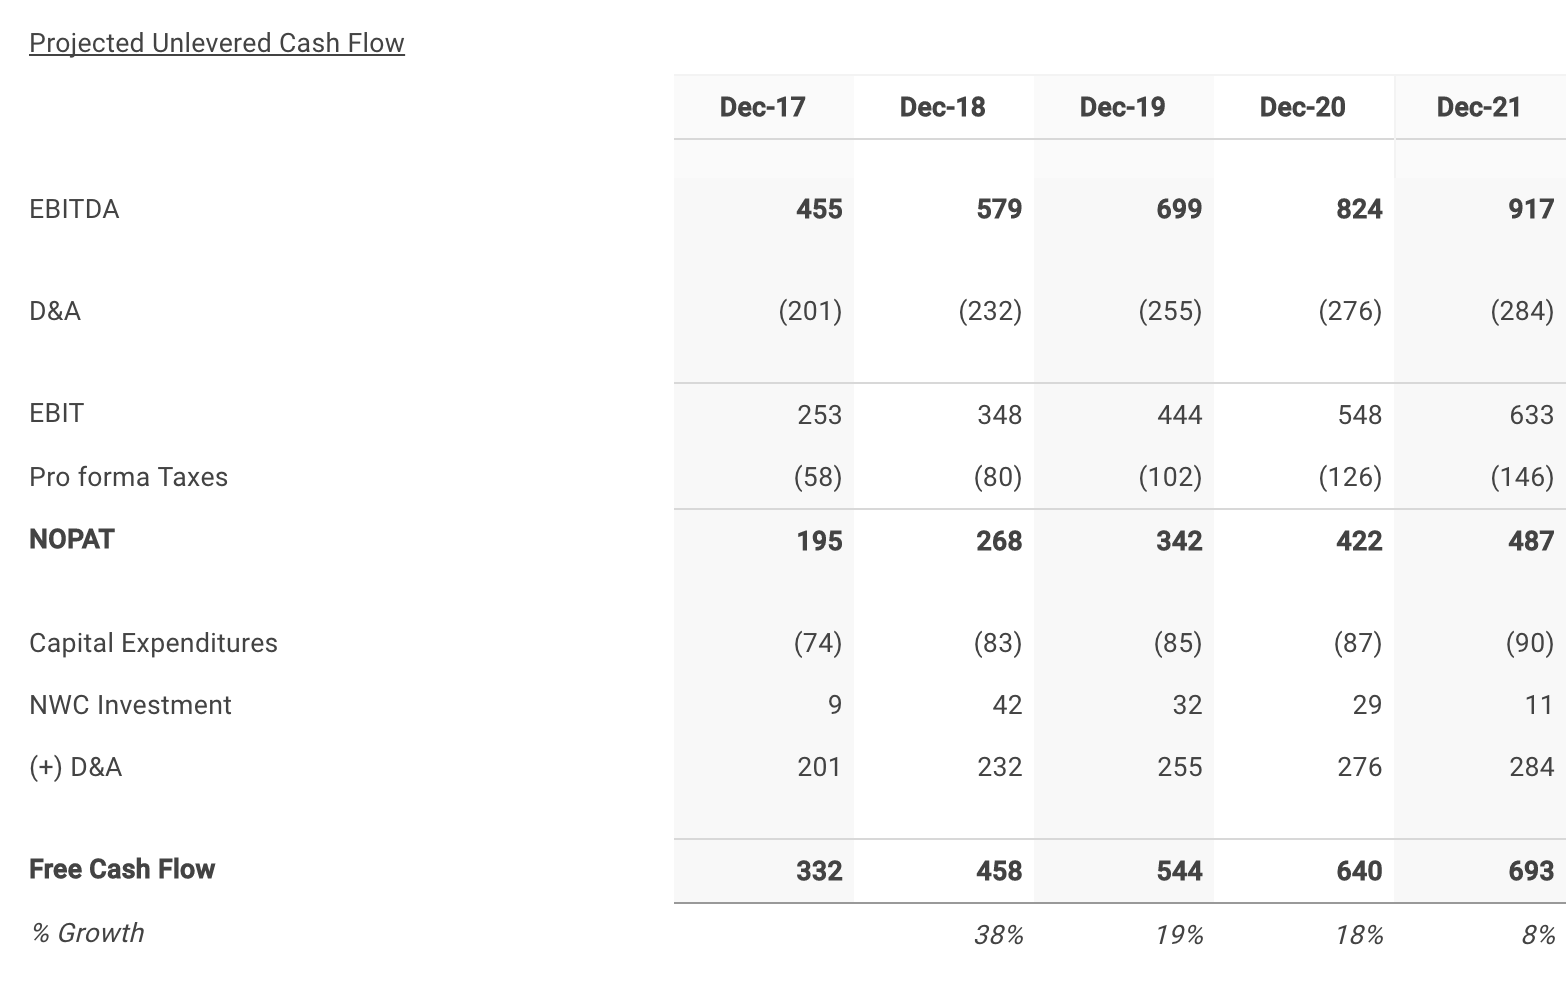 InterActiveCorp 's Five Year Projected Free Cash Flows